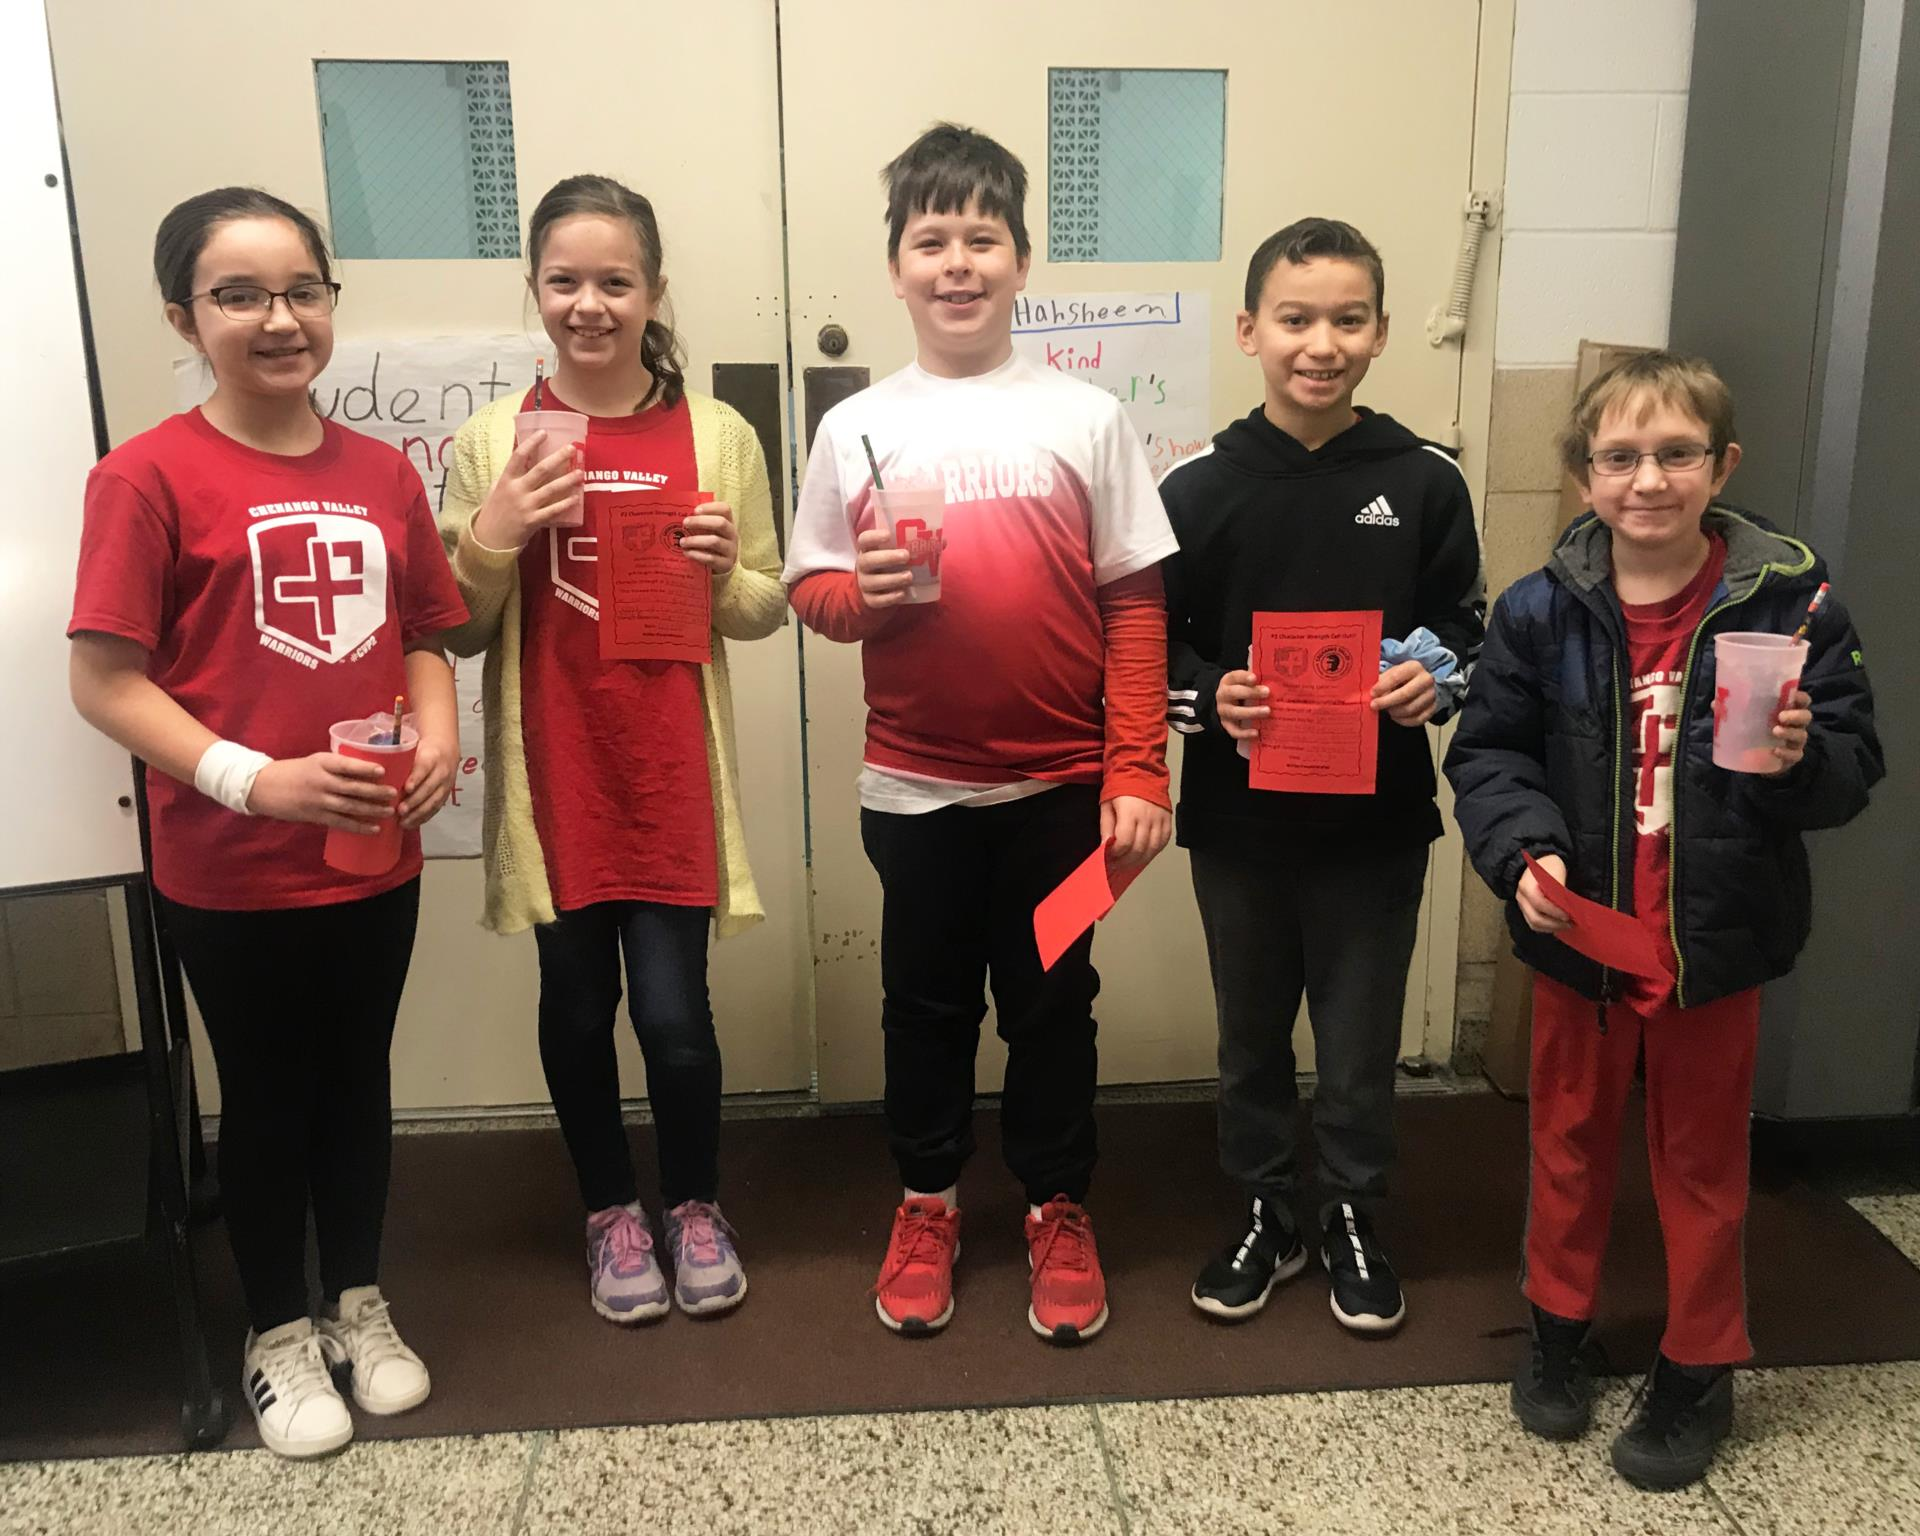 students recognized for chenango bridge character call out program